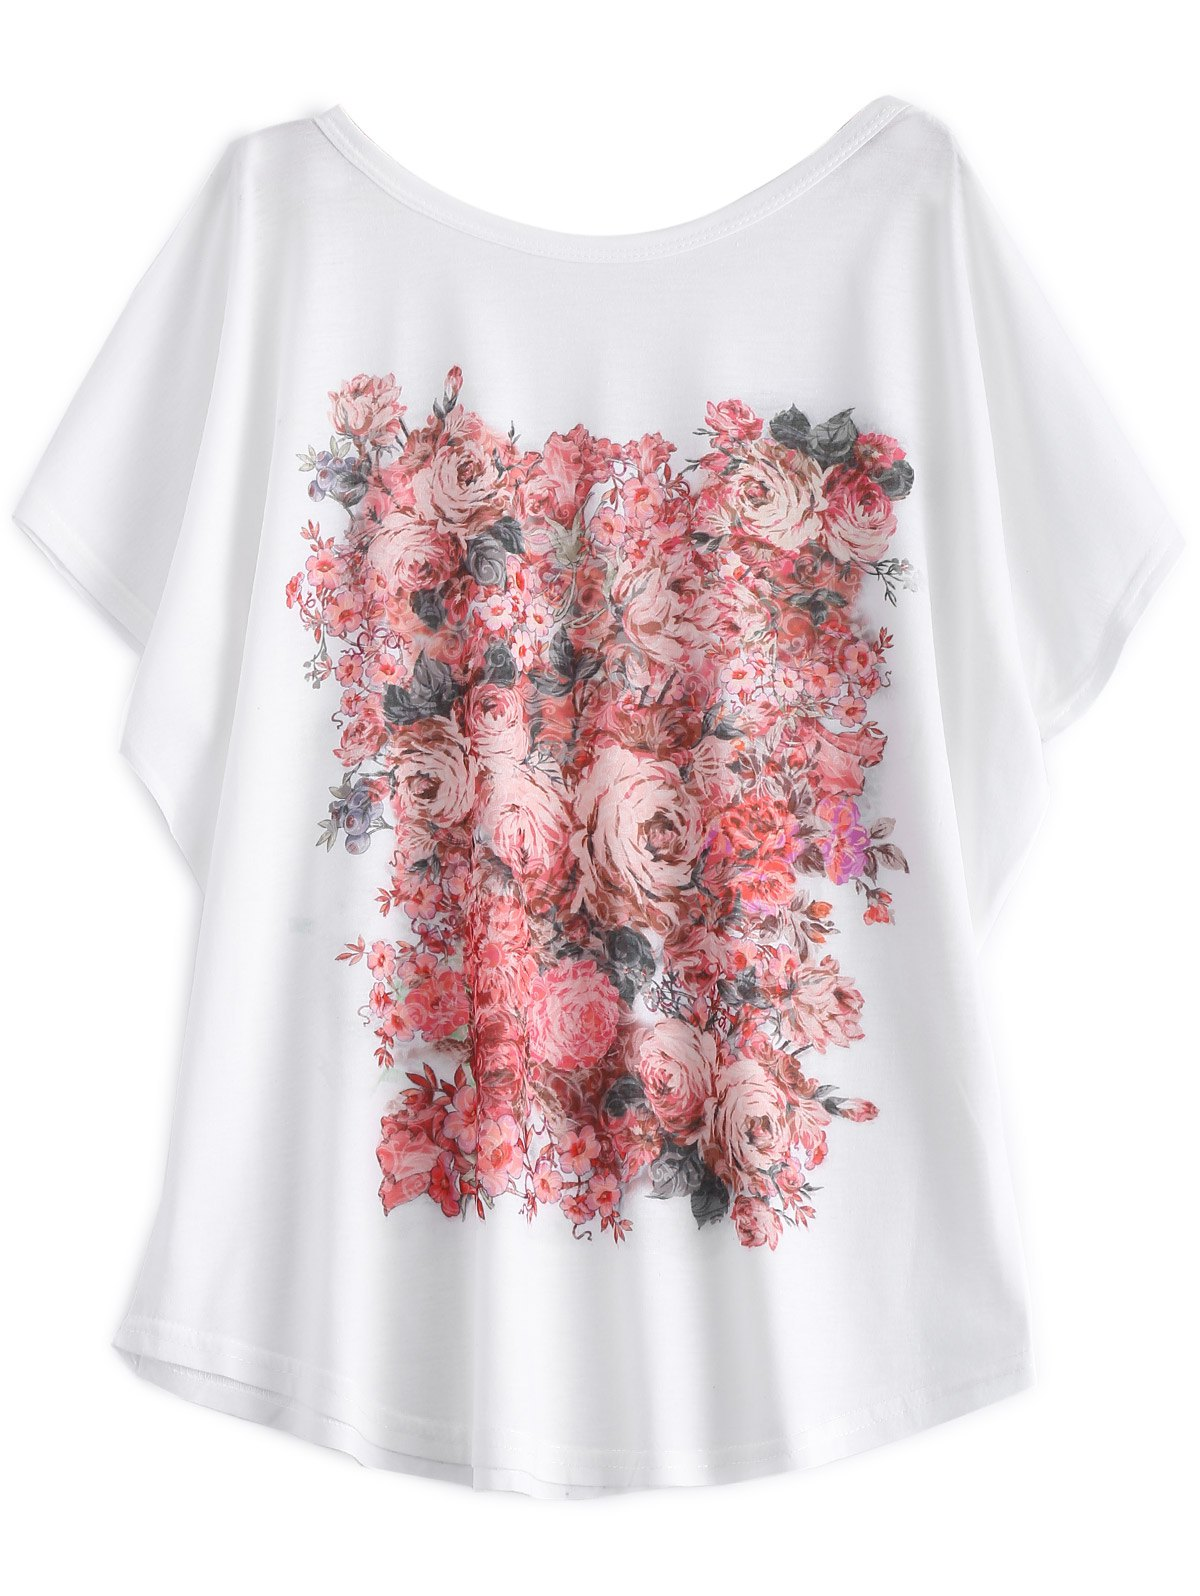 Batwing Sleeve Floral Print White T-Shirt - WHITE 2XL